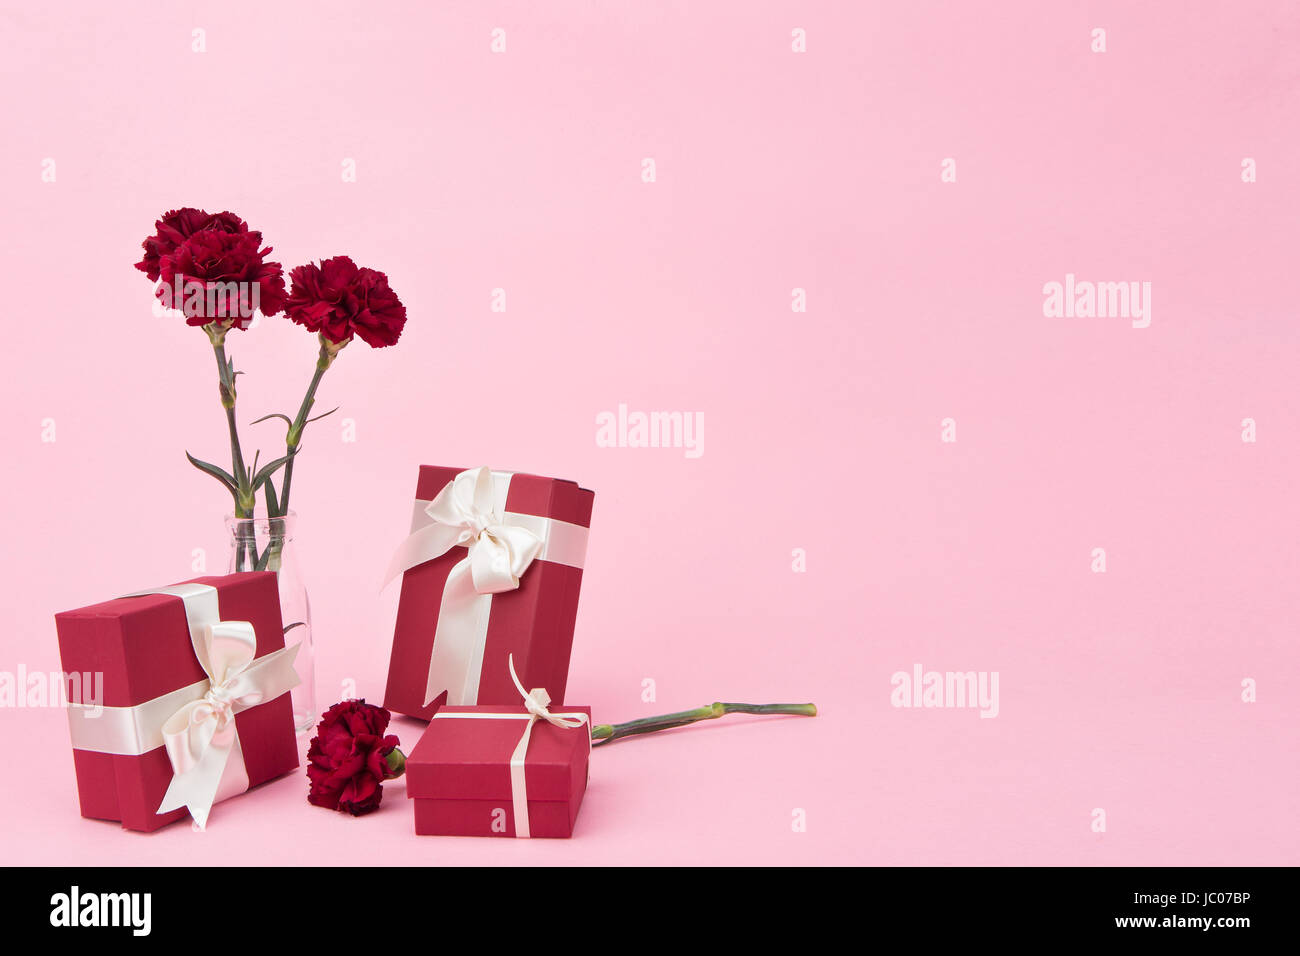 a gift of appreciation 059 - Stock Image